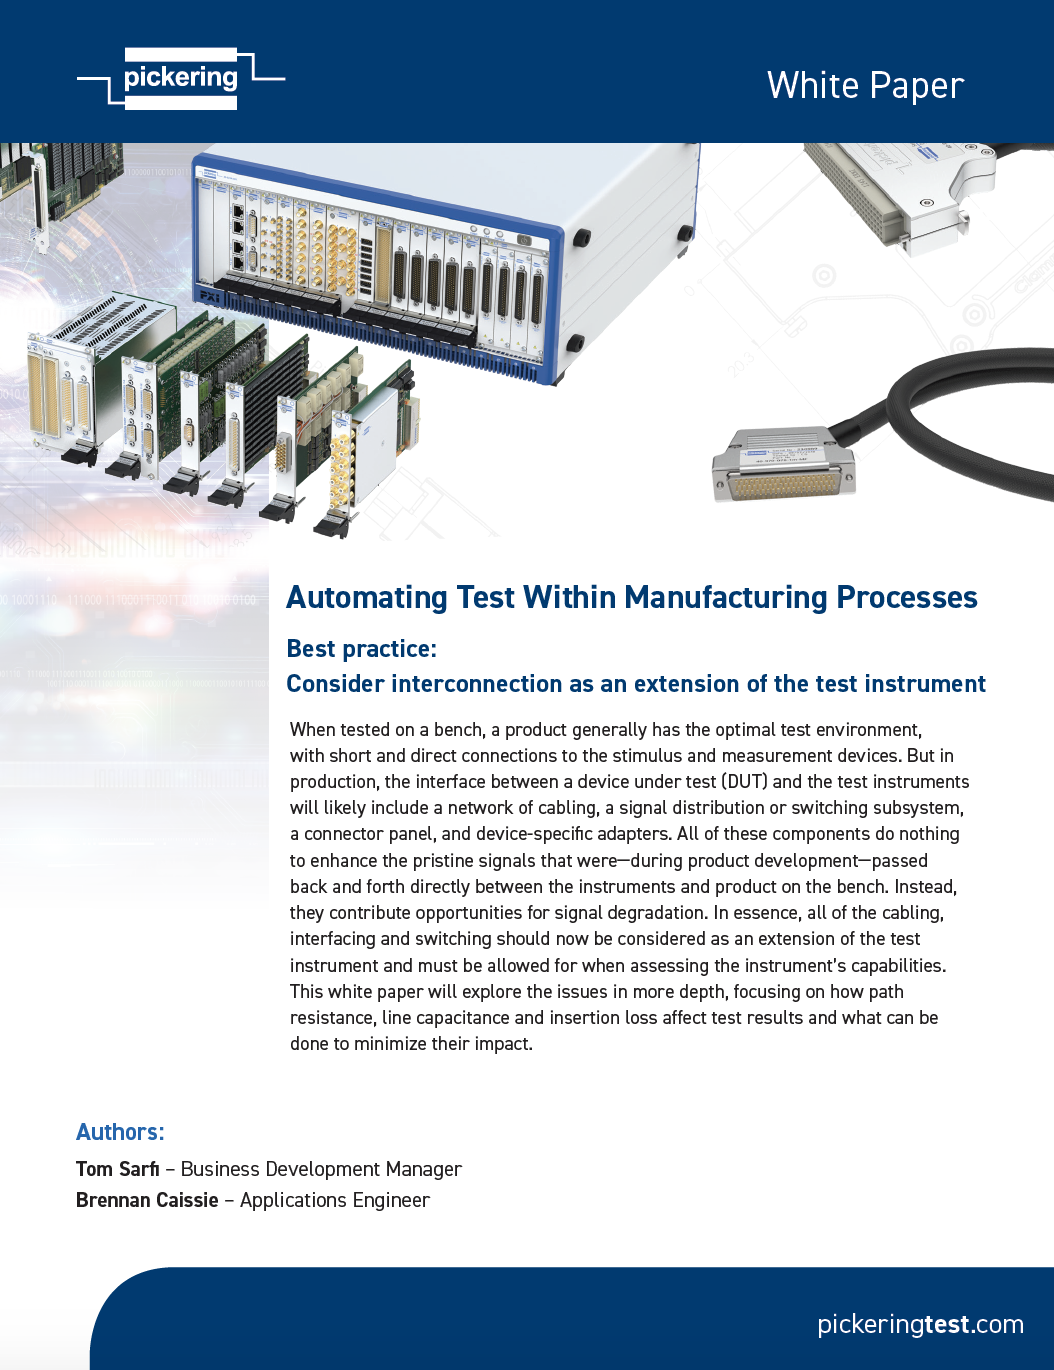 whitepaper-cover-automating-test-within-maufacturing-processes